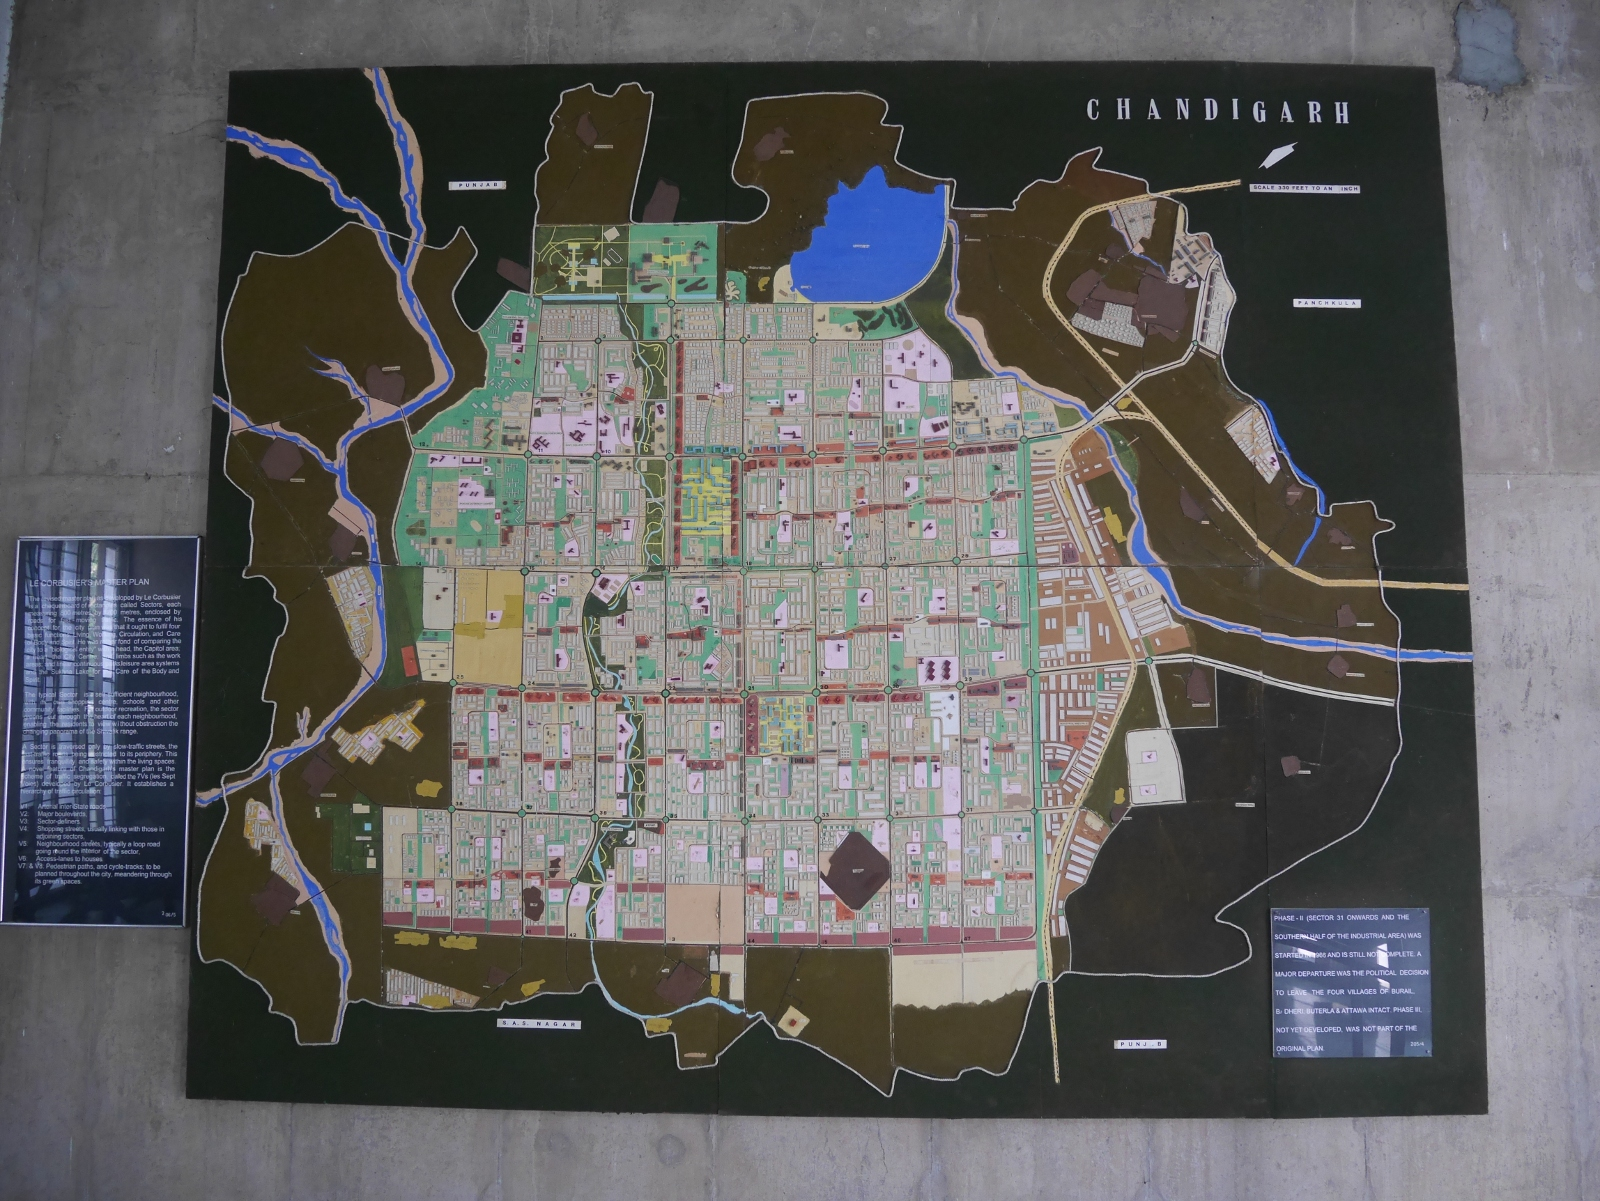 The town plan of Chandigarh, as portrayed in the city museum.